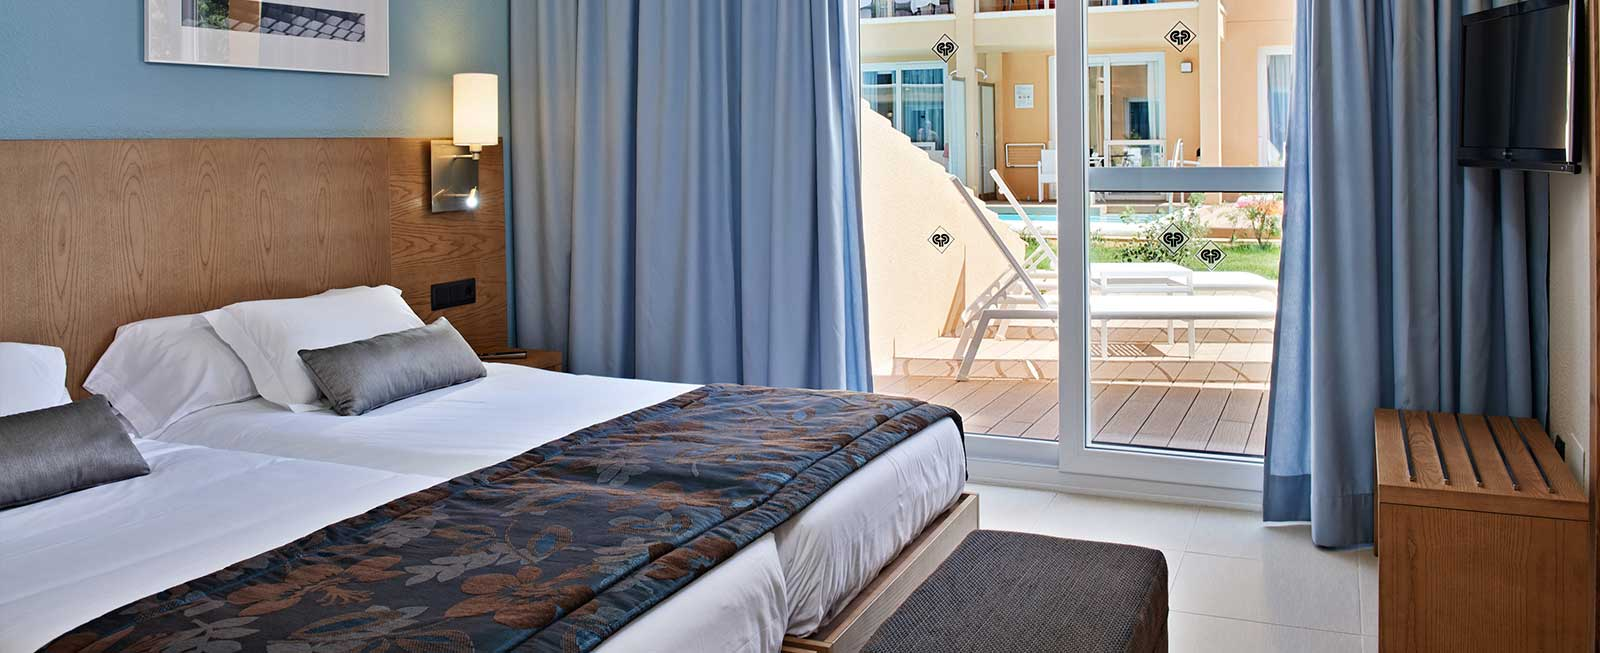 Swim Up Suite Monte Safari Holiday Villaje Majorca